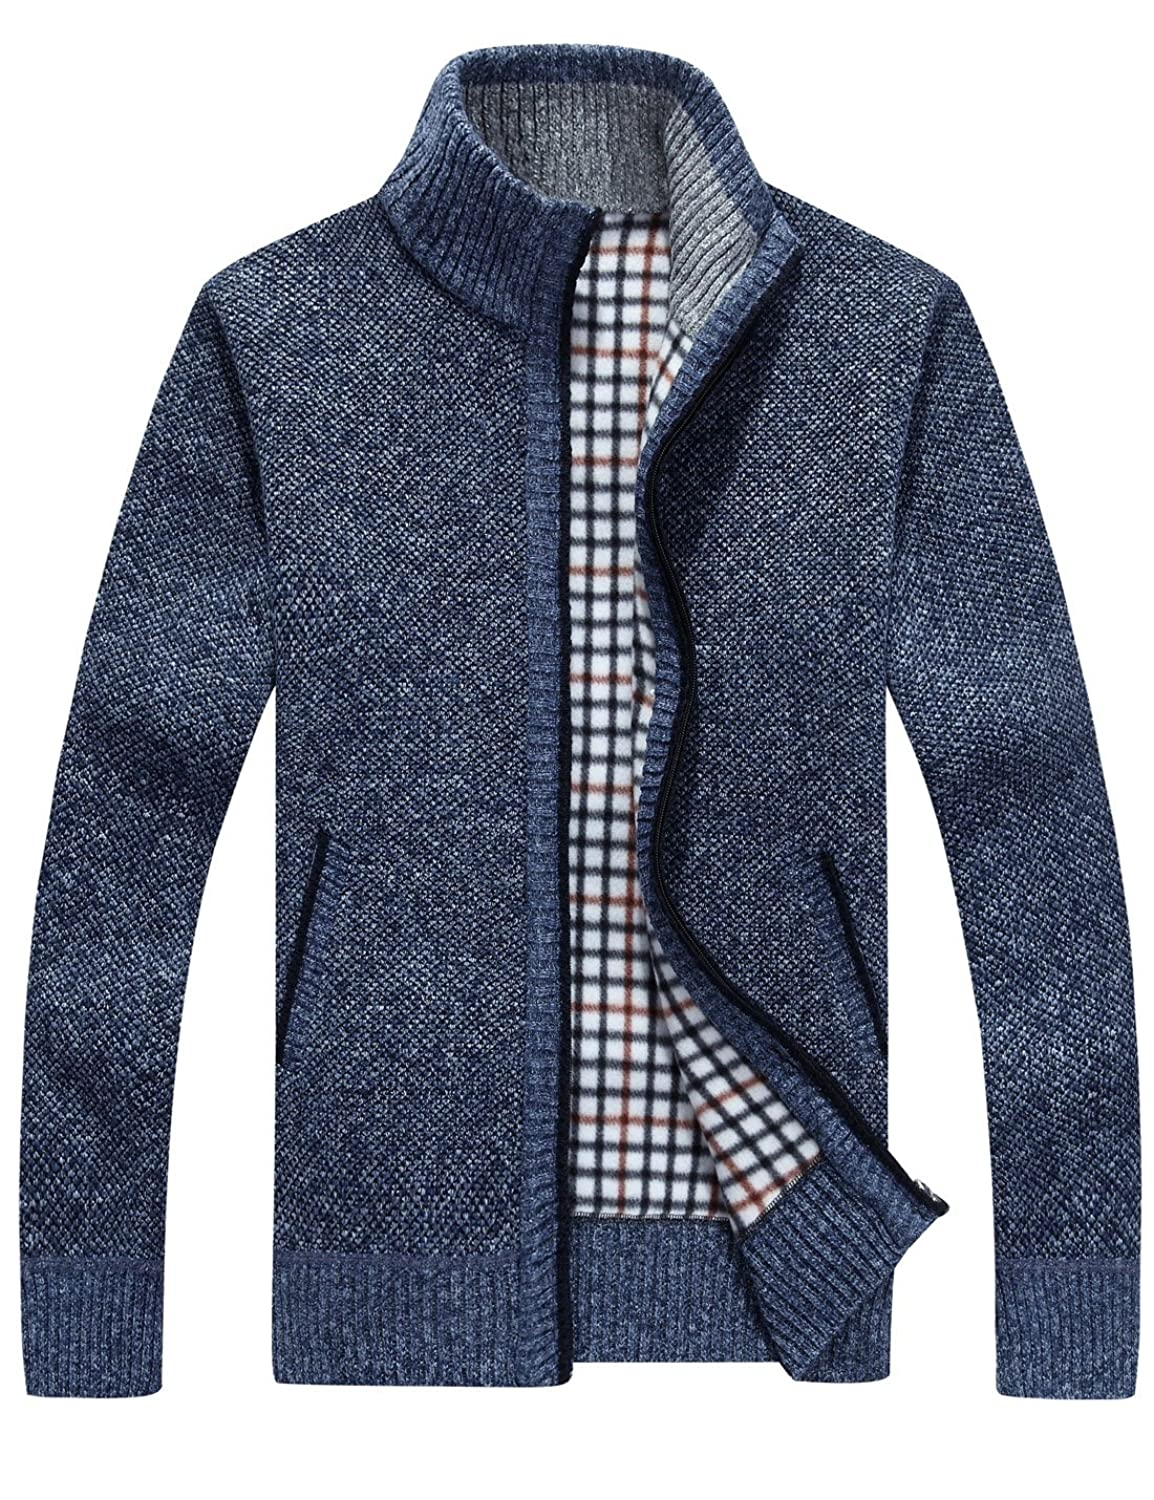 646dc5c4f5fd1 Men s Casual Slim Full Zip Thick Knitted Cardigan Sweaters with Pockets